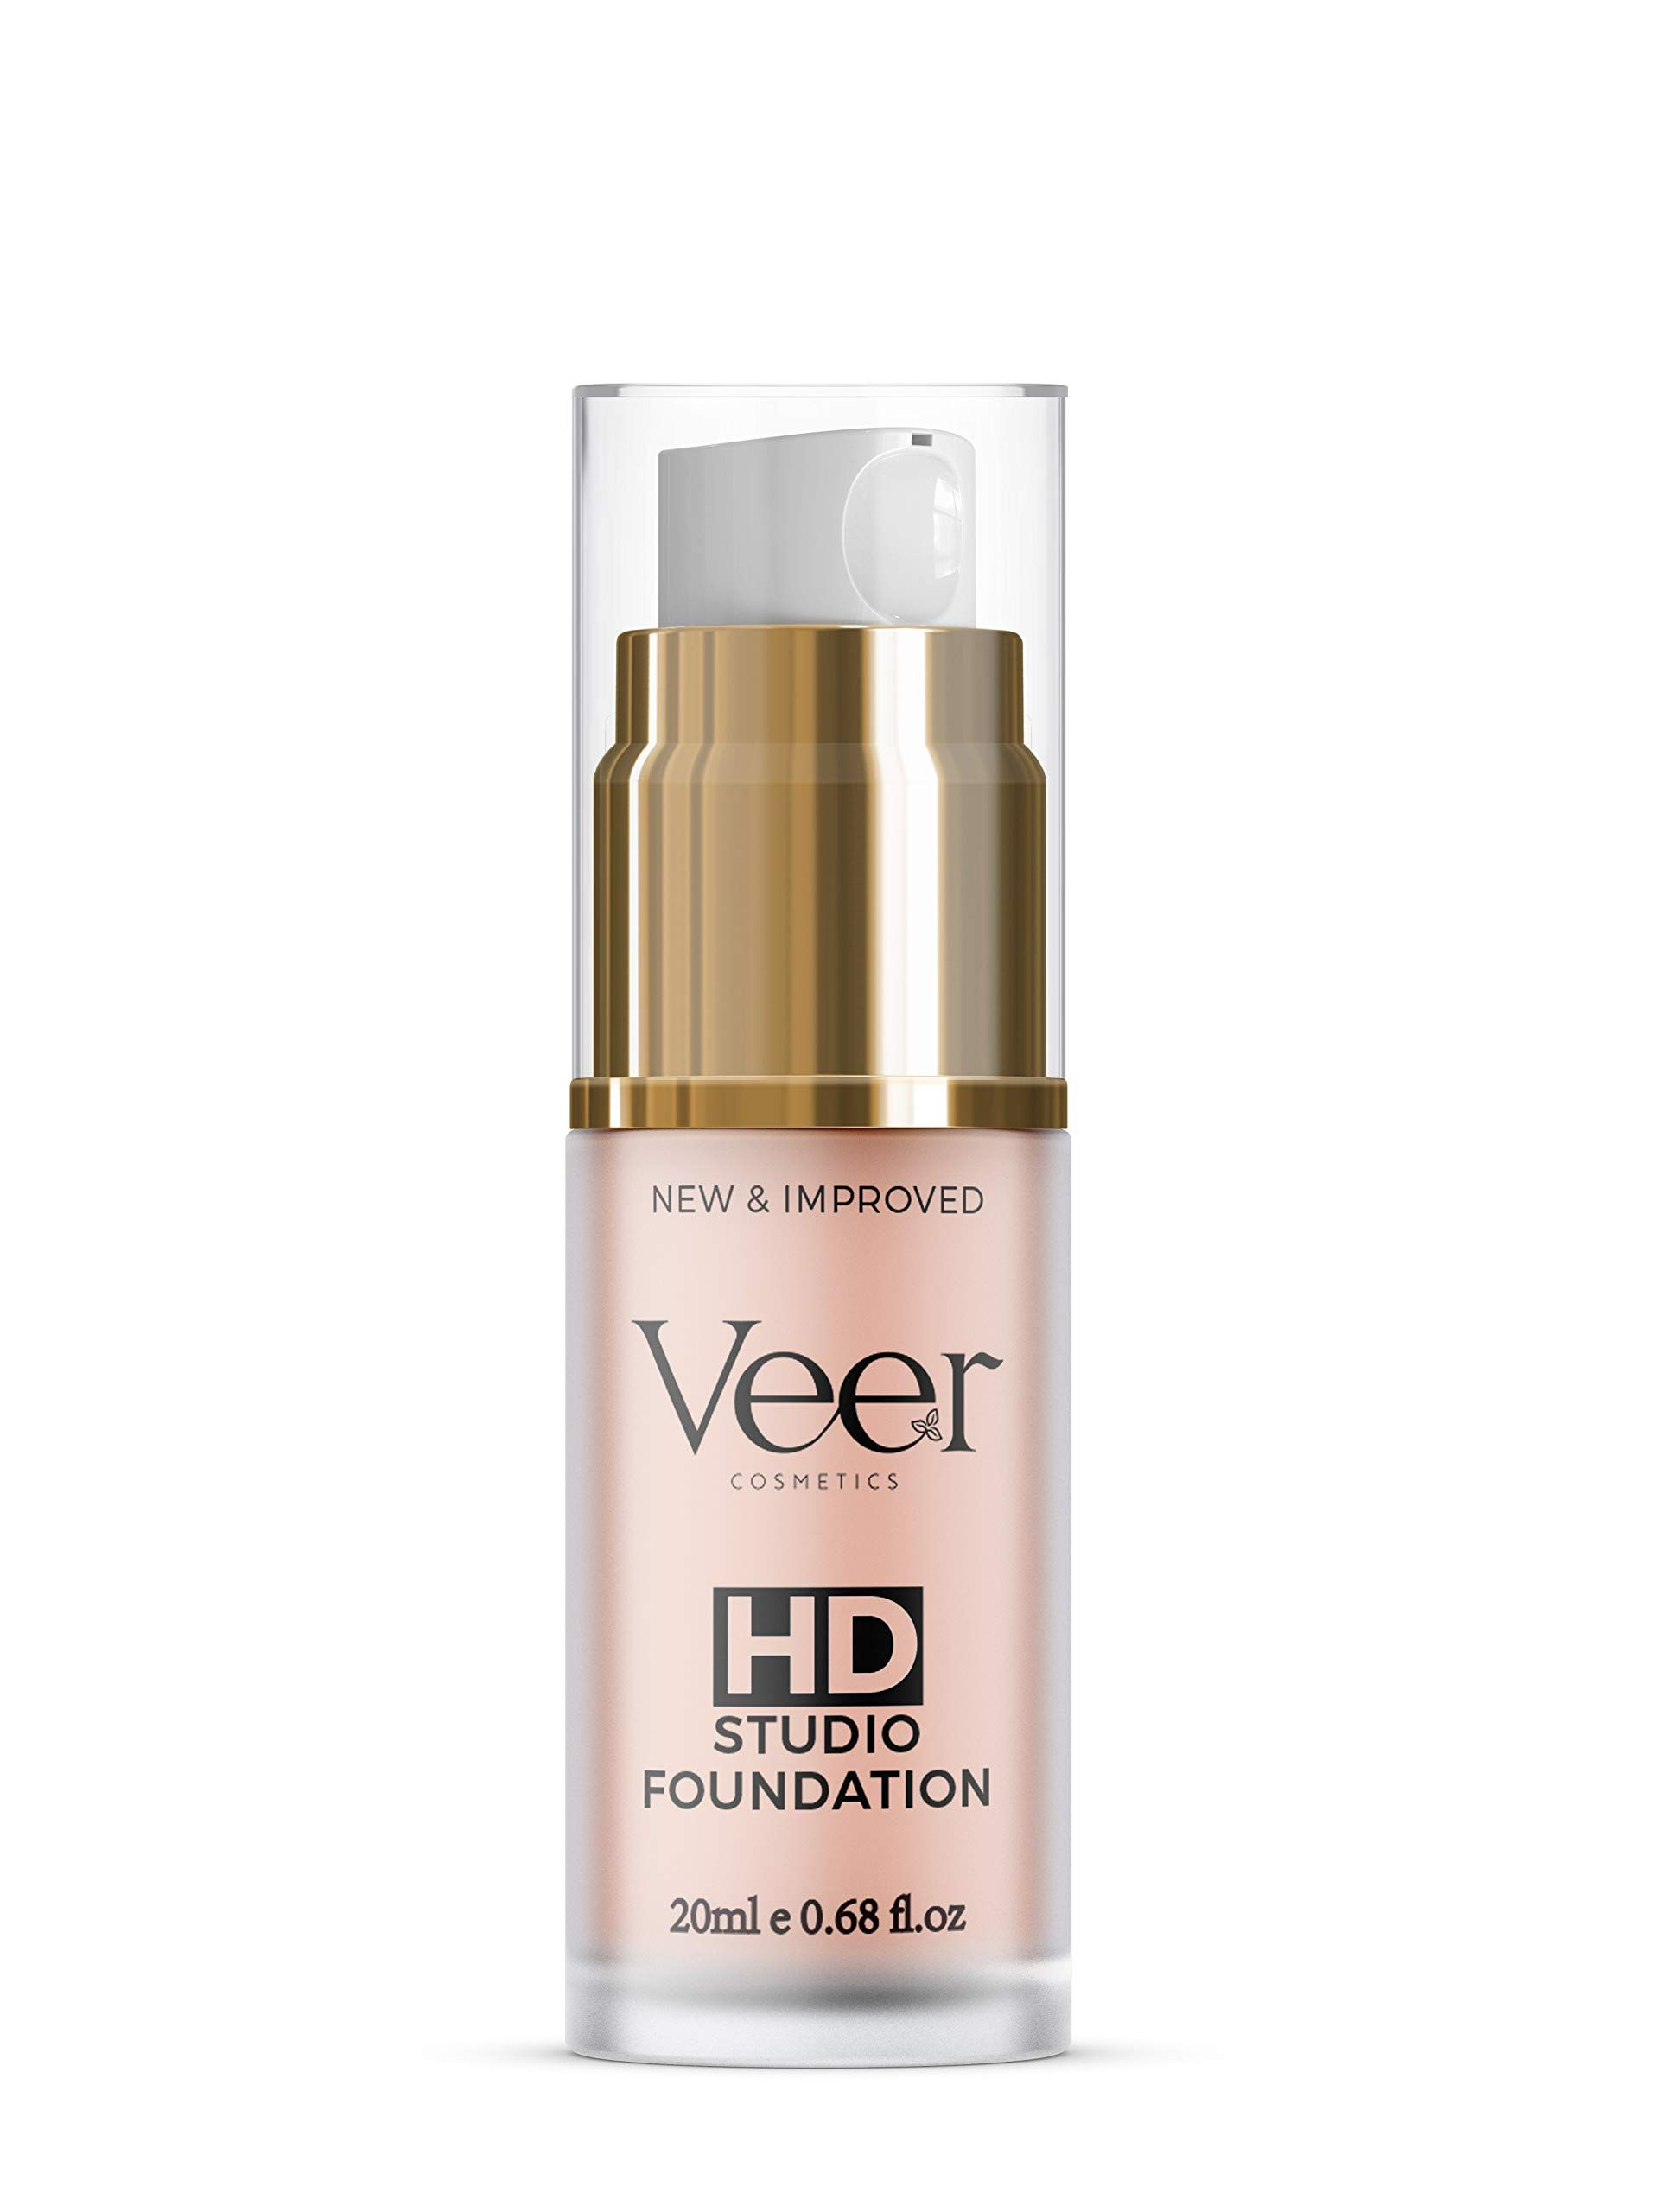 Veer HD Studio Foundation Full Coverage Foundation